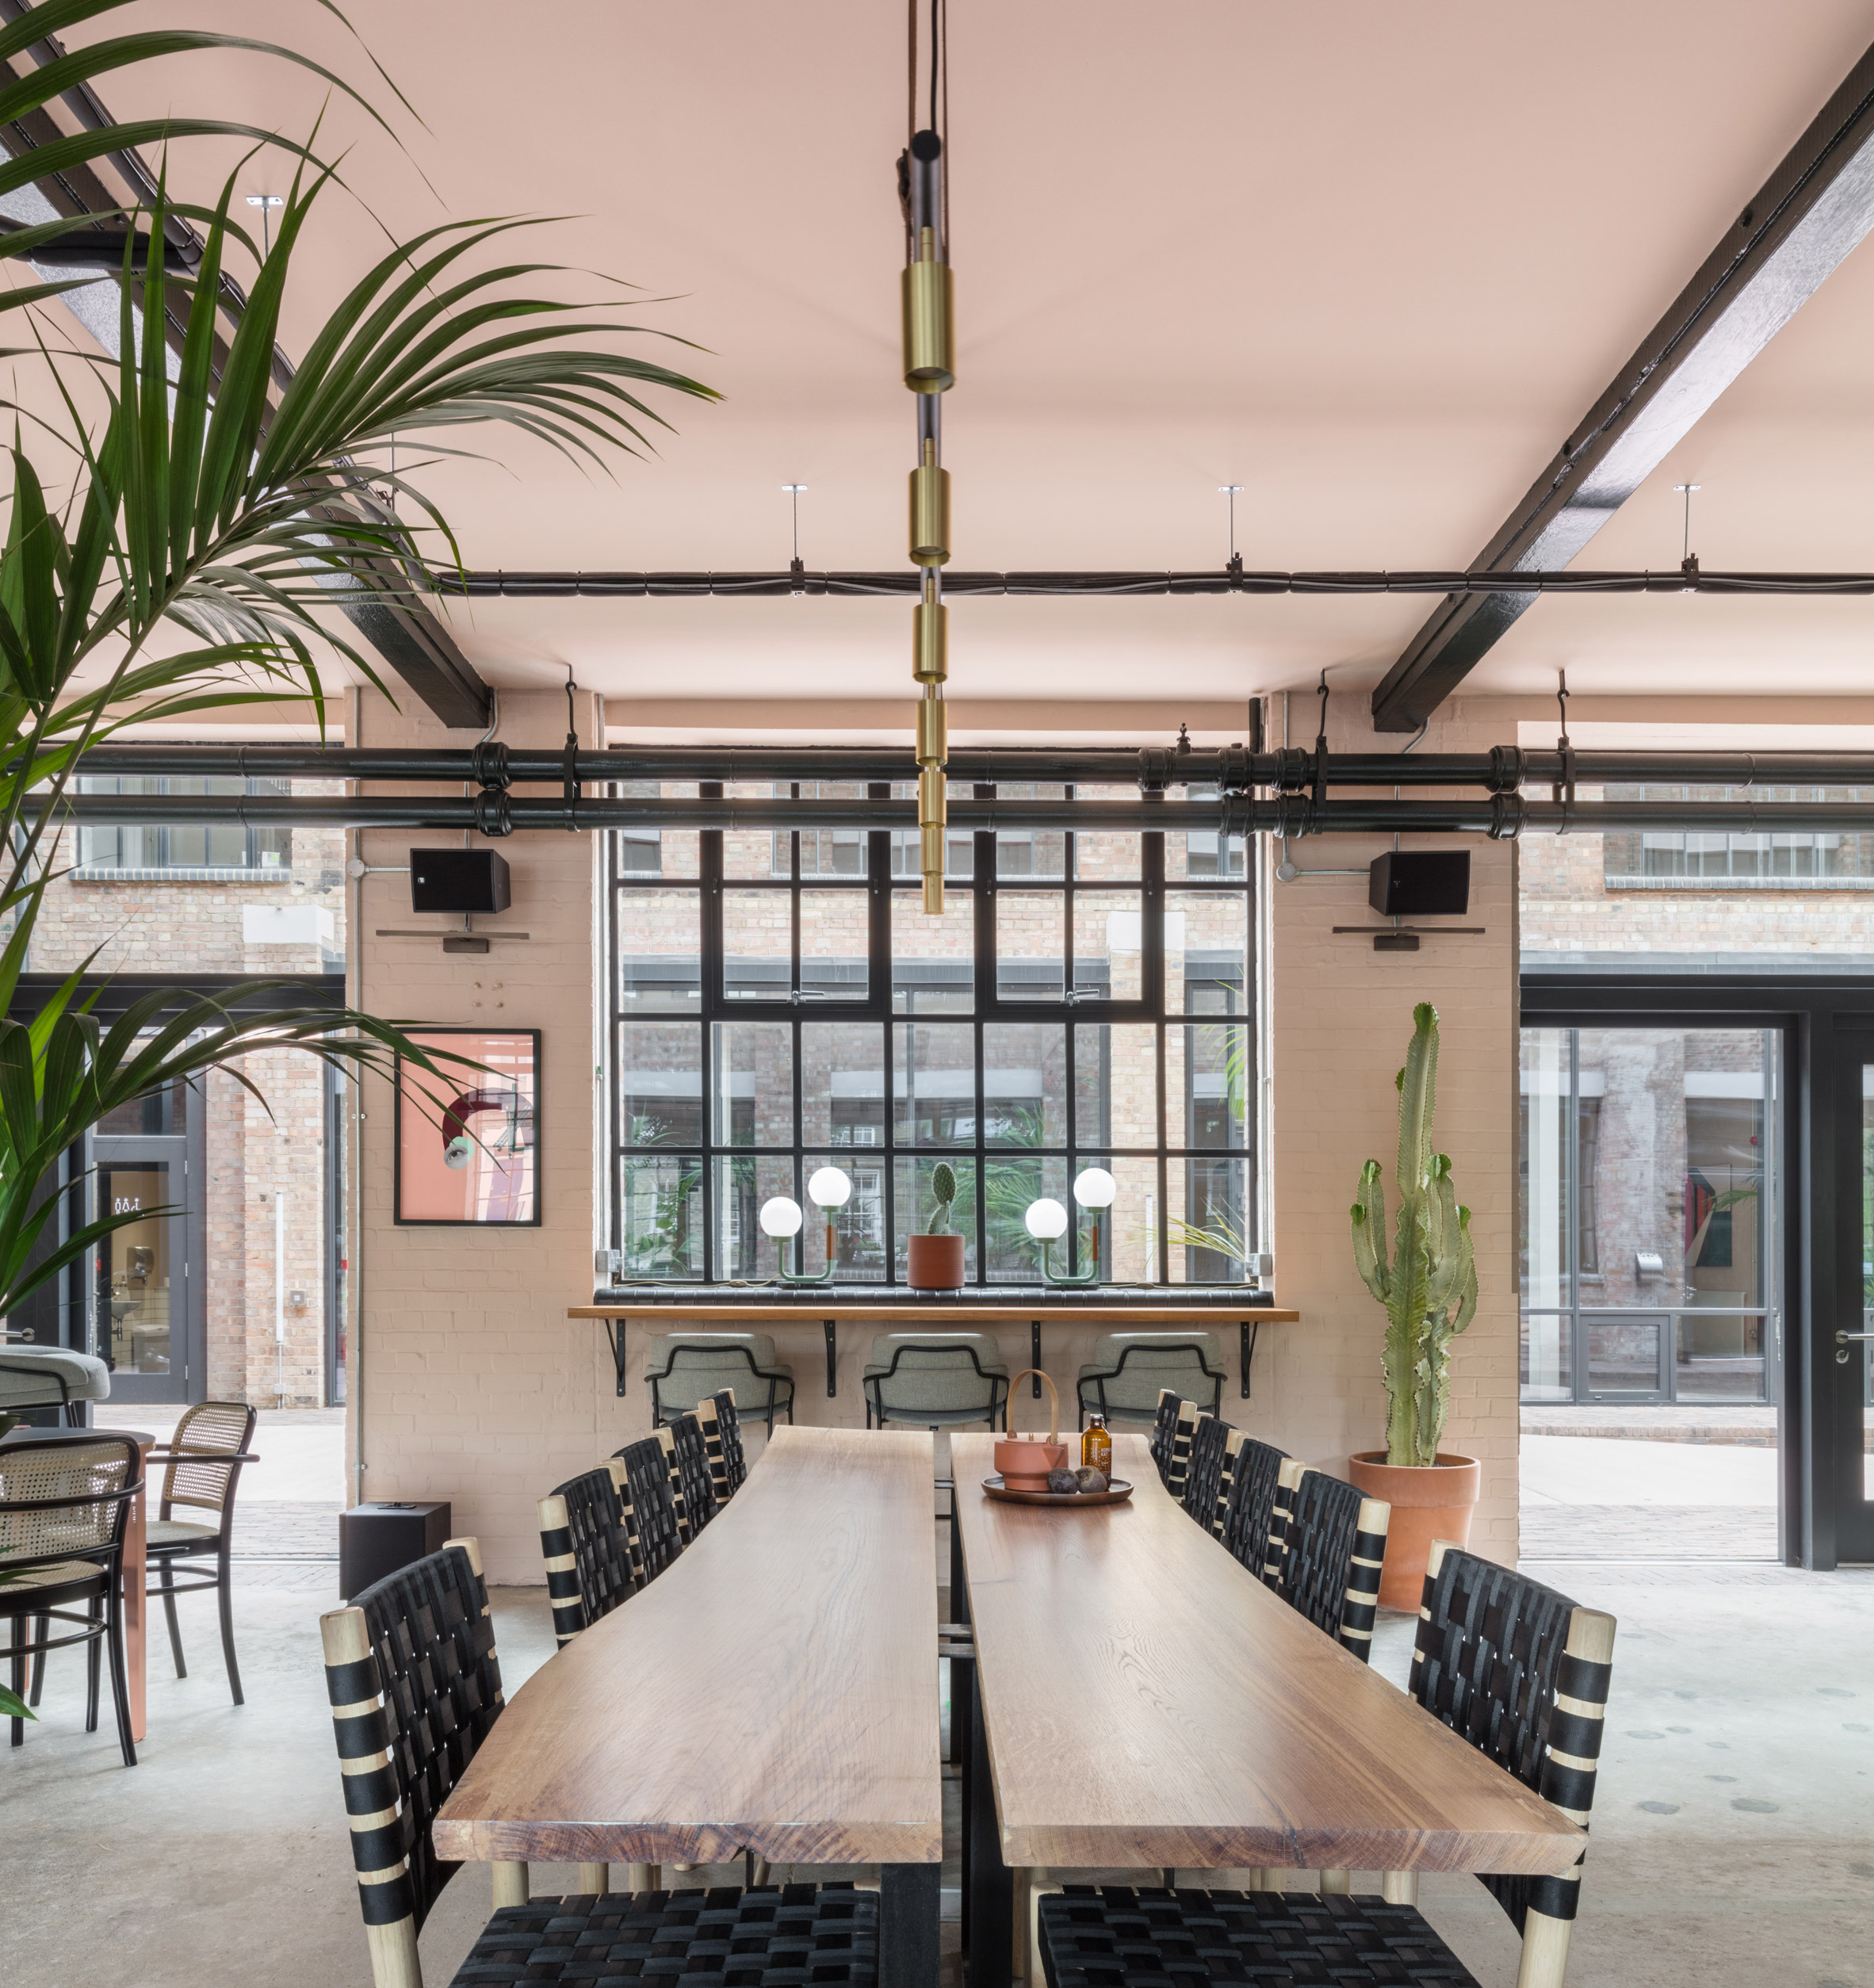 """Sella Concept applies """"cocoon of rich materials and colour"""" to interiors of east London office"""